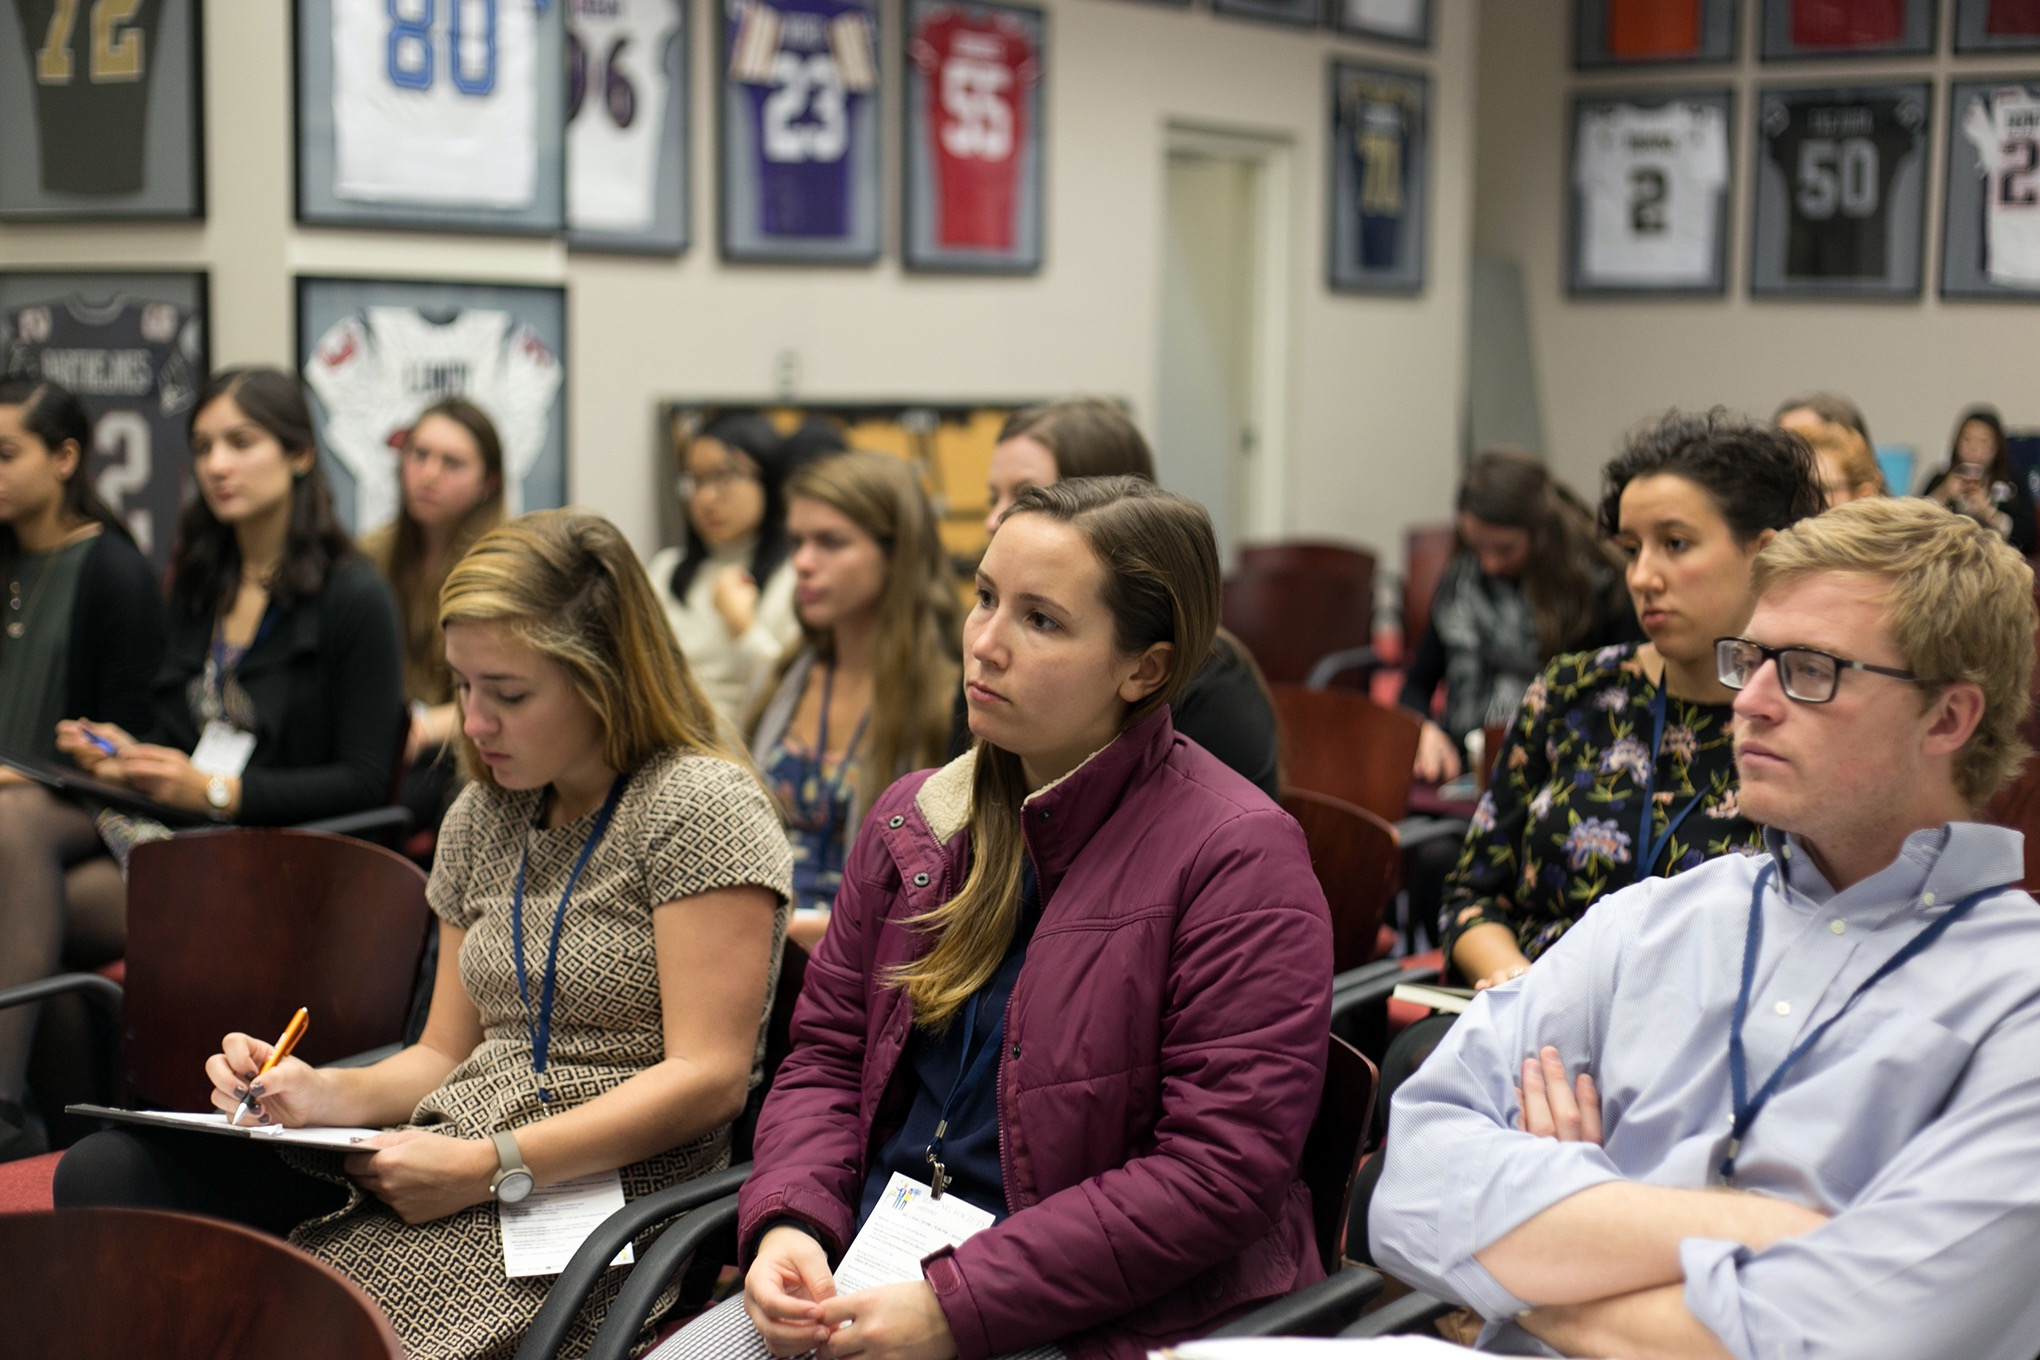 Nearly 60 UVA students, including Madison House volunteers and student leaders,attended this first Serving Society Conference.